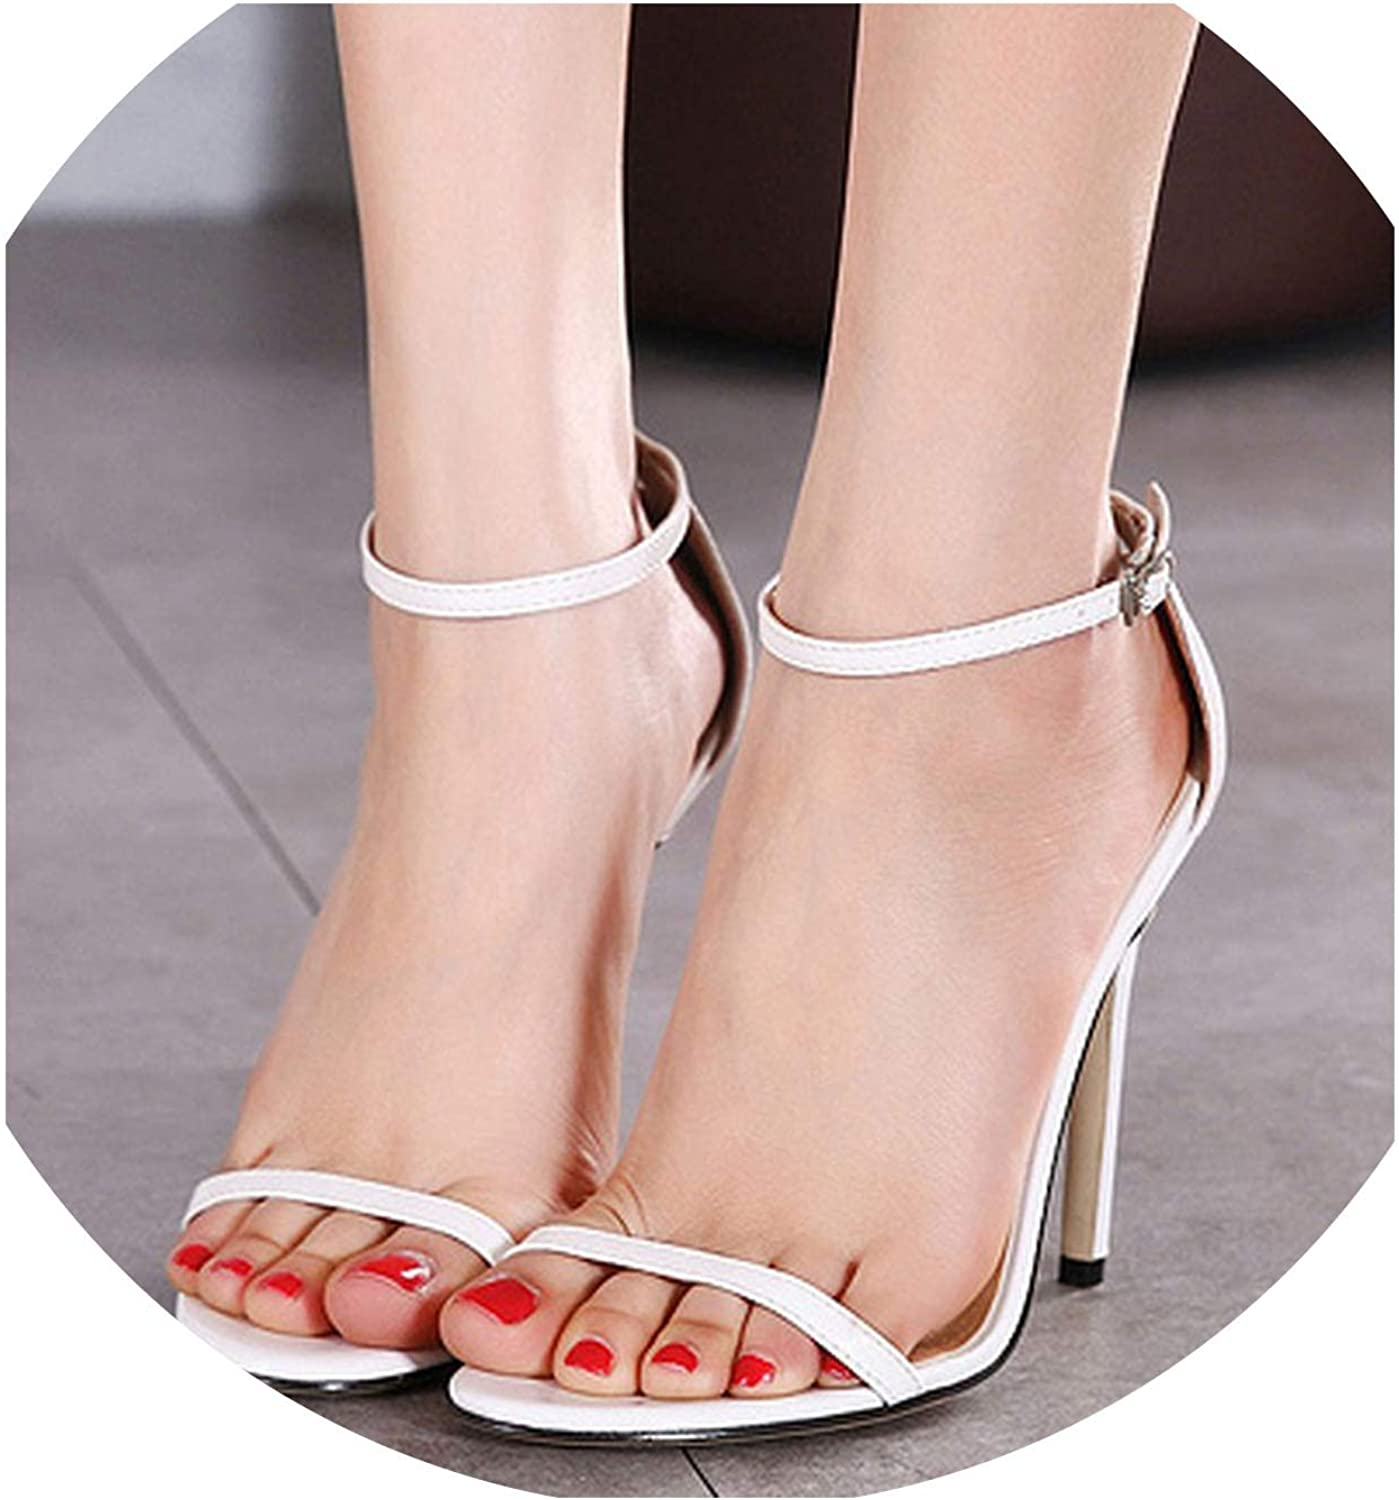 Ankle Strap Summmer shoes Women's Sandals High Heels Fashion Ladies shoes Four colors